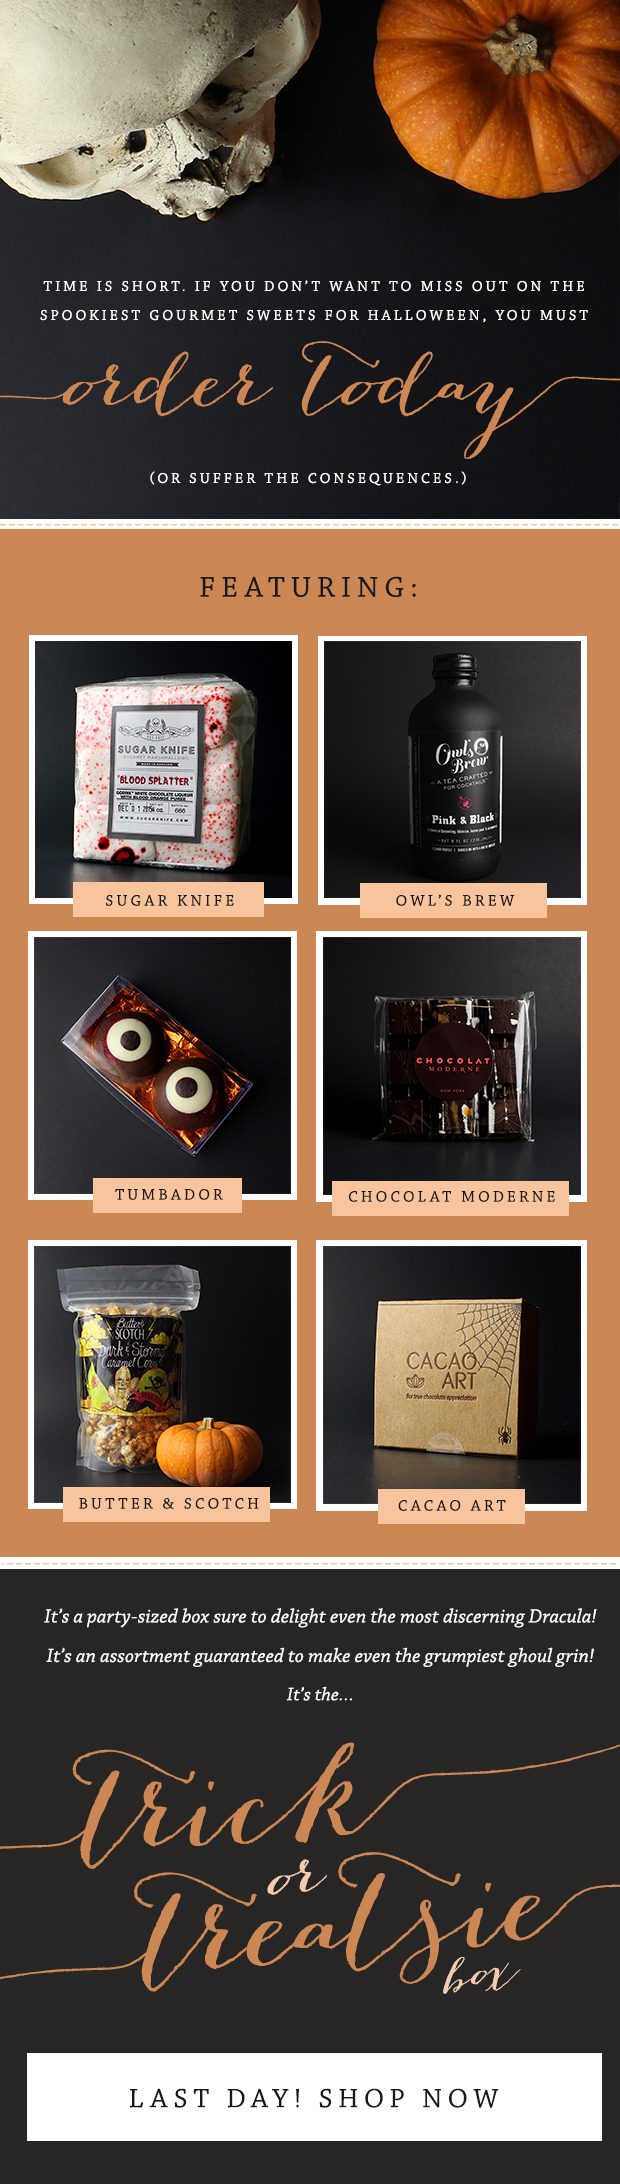 Spooky email design and photography for Treatsie's Halloween sweets box.